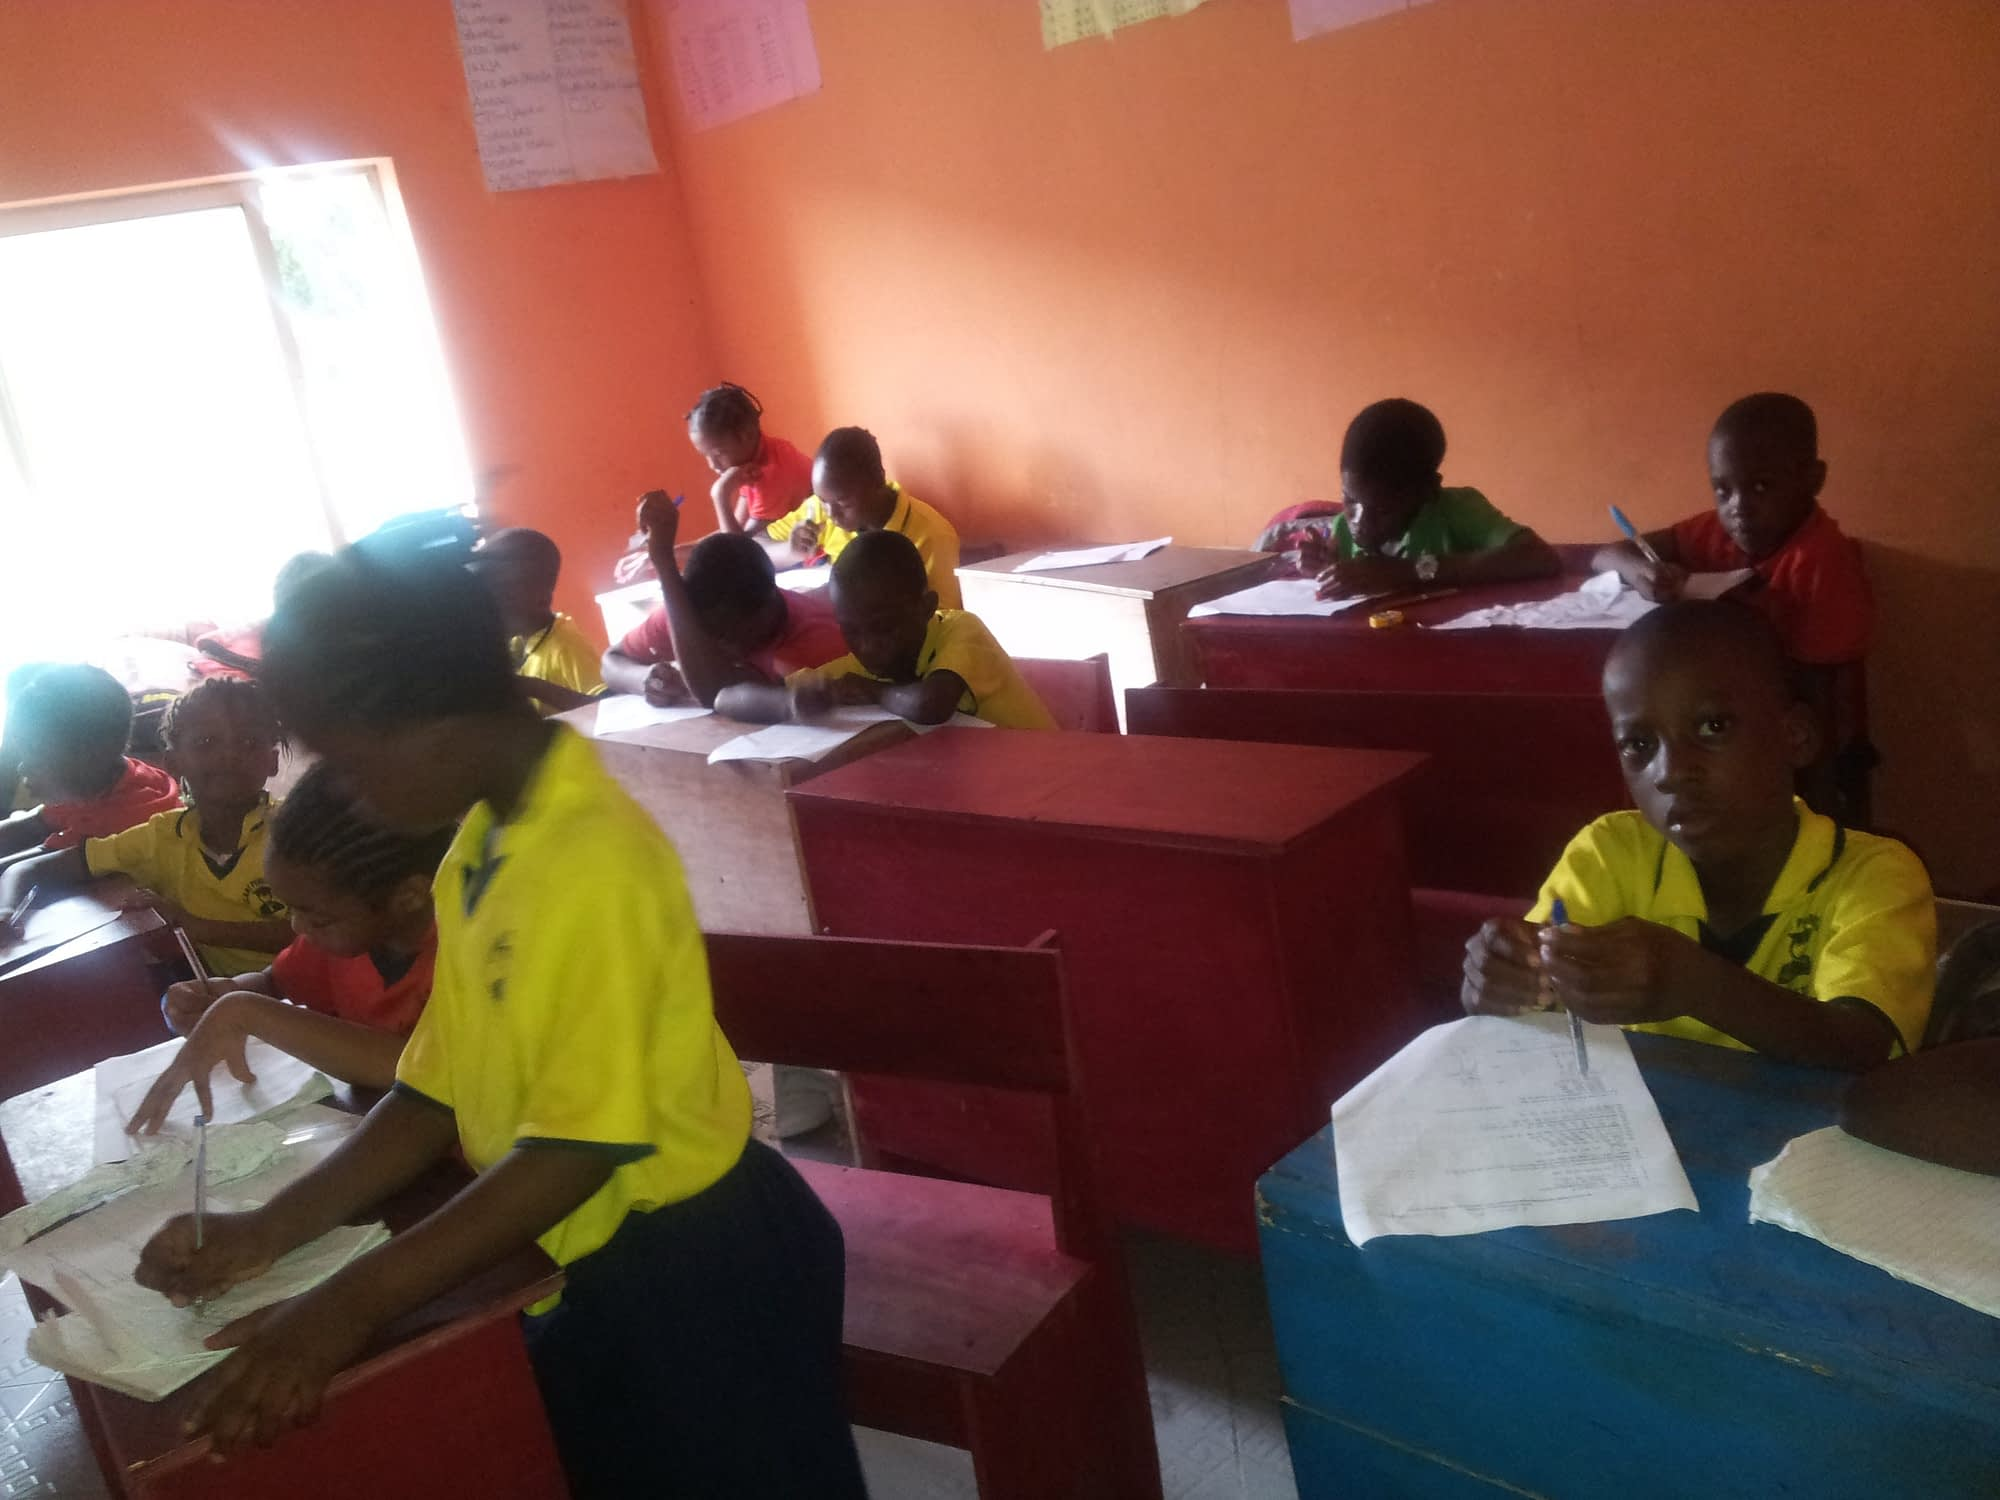 Students eagerly learning at the school.